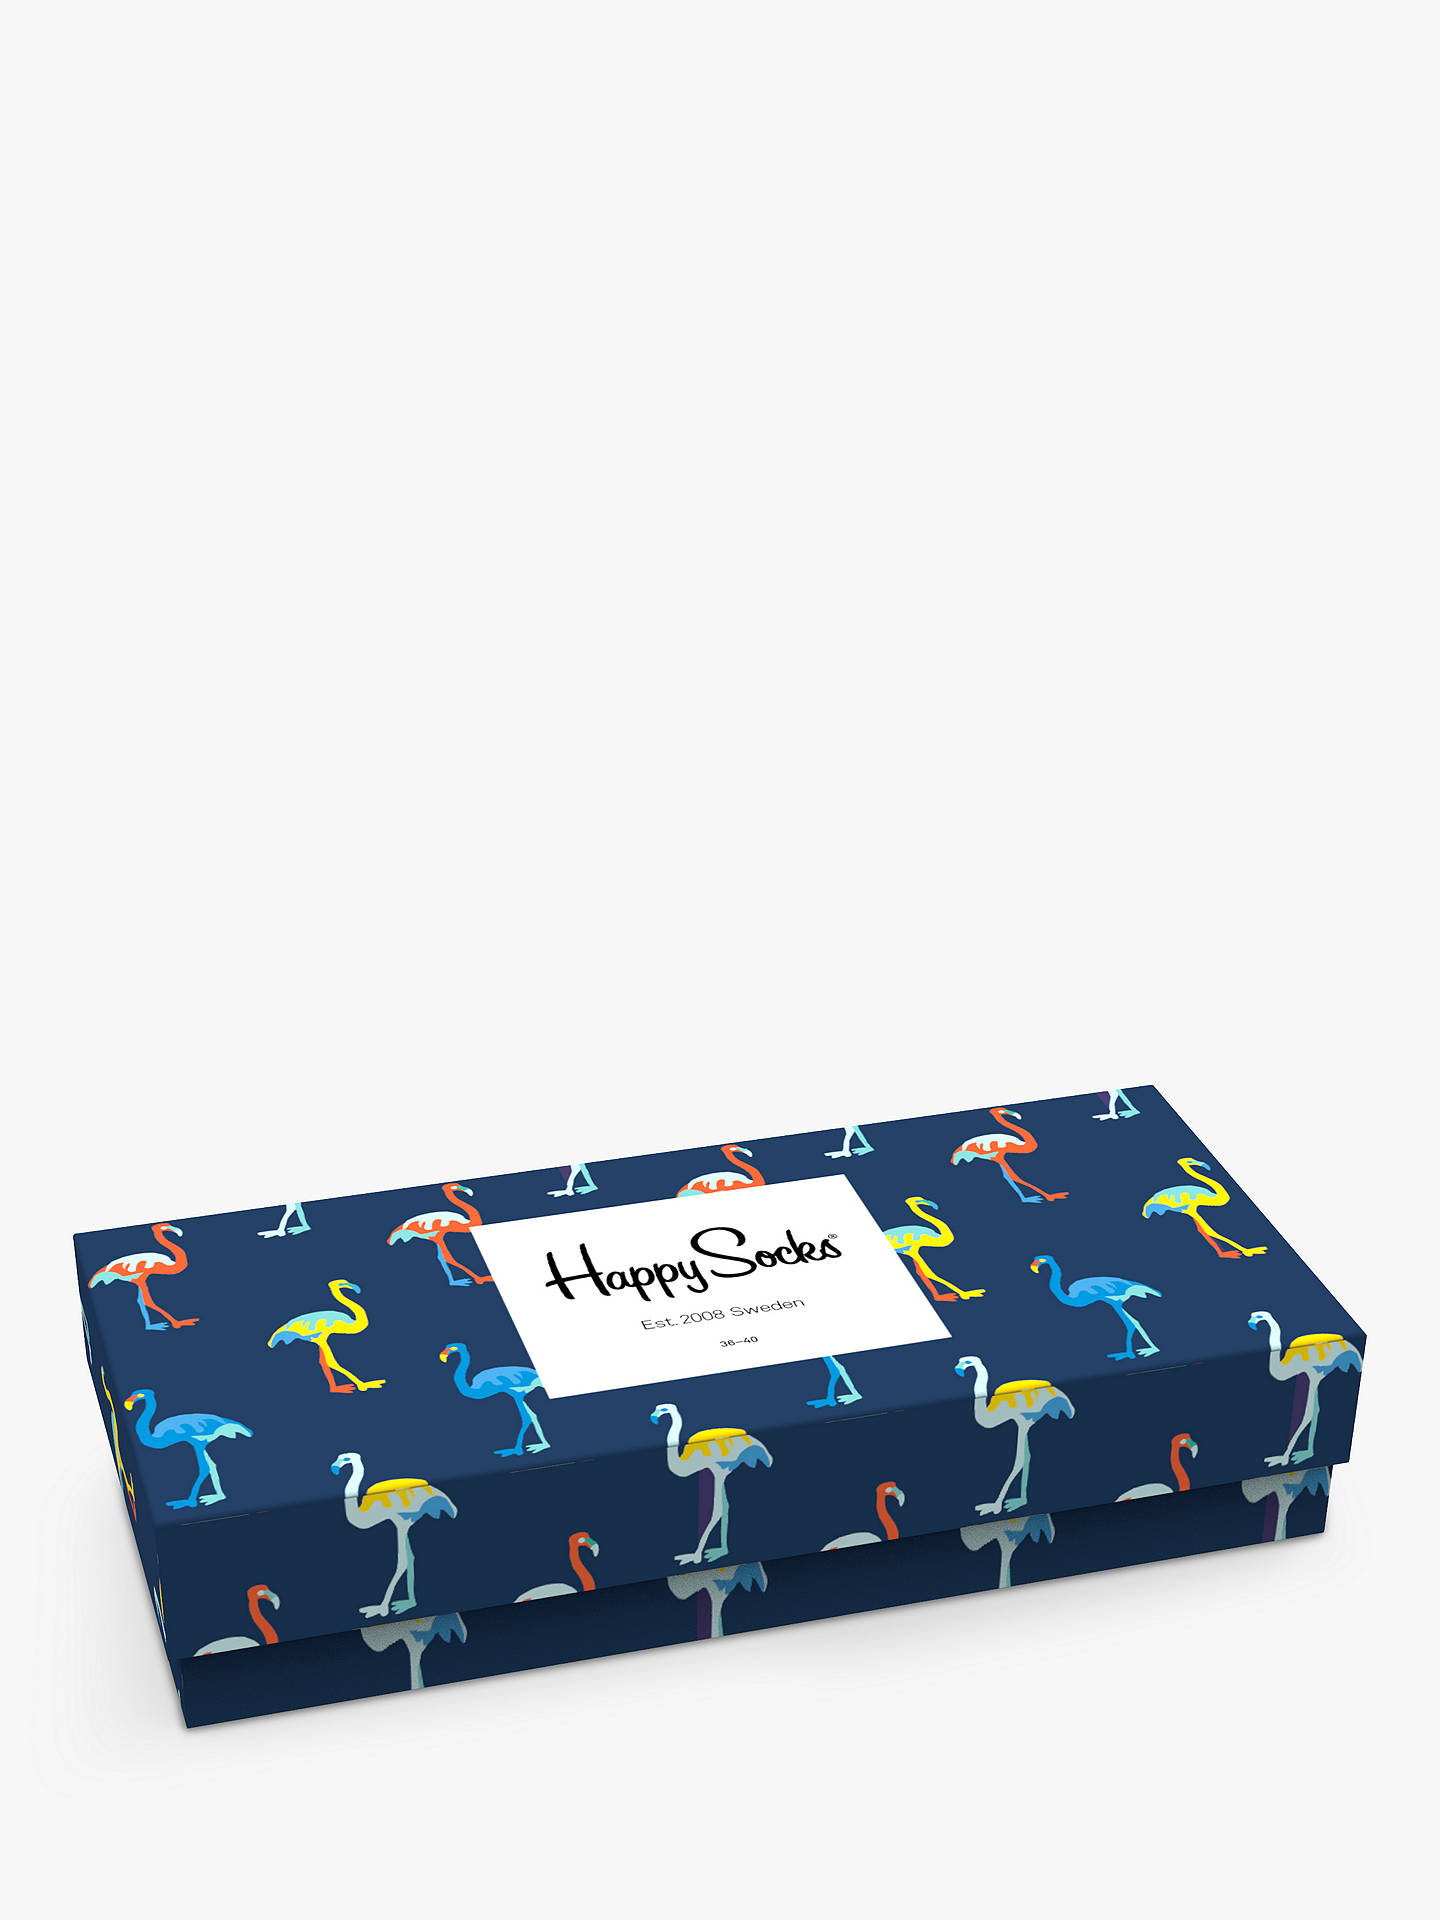 Buy Happy Socks Gift Box, Pack of 4, One Size Online at johnlewis.com